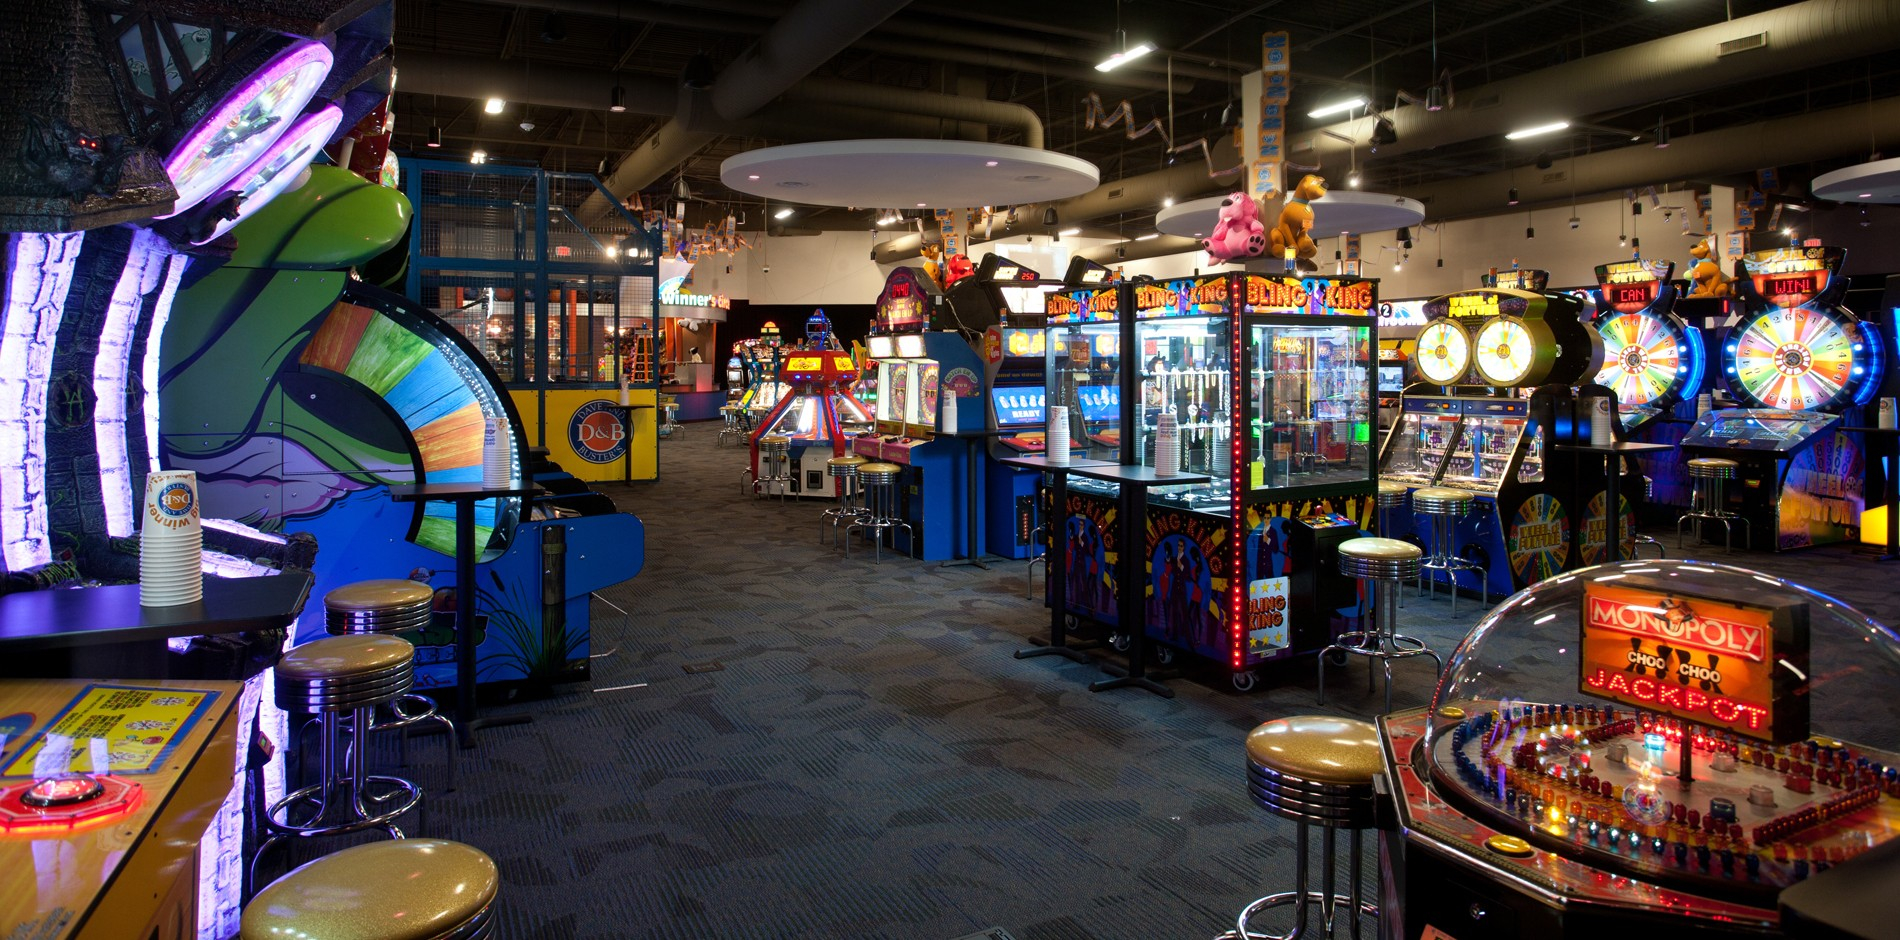 The Dave and Buster's in Braintree is at least four times that of the one in Providence. It is located right next to the South Shore Plaza mall. Once you walk in, you are carded immediately.